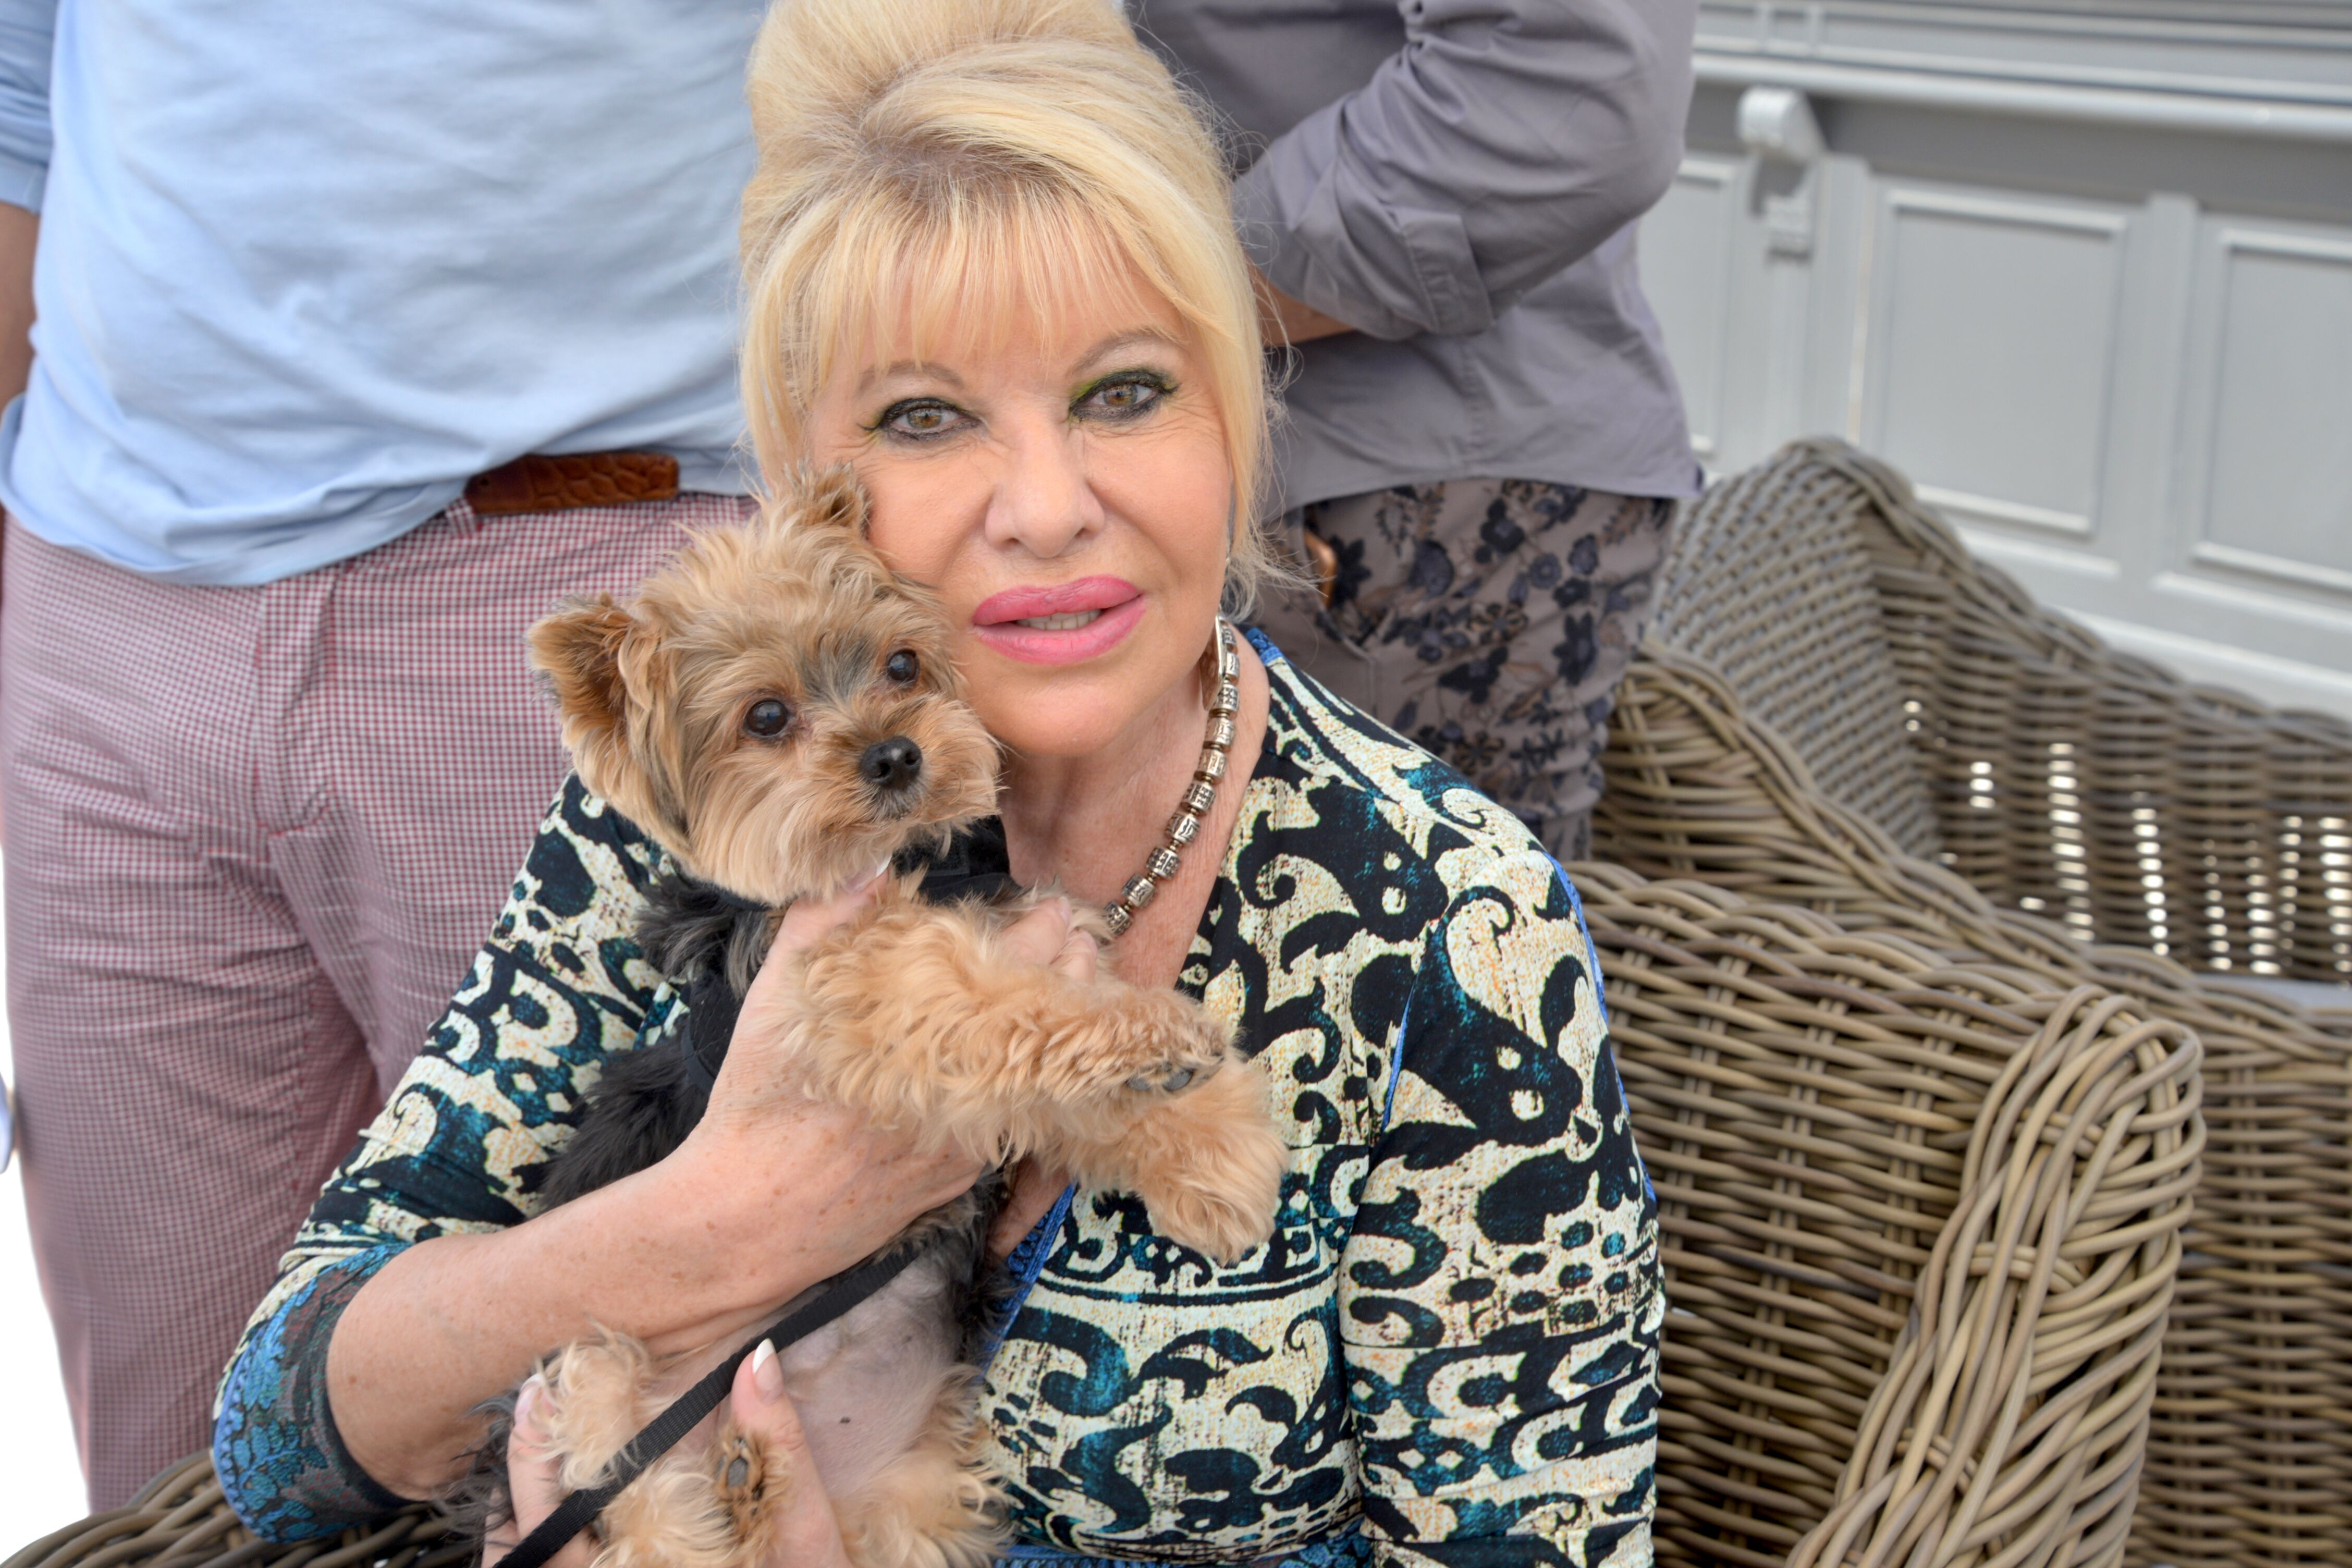 Ivana Trump sighted at The Deck at The Island Gardens on March 6, 2016 in Miami, Florida. | Source: Getty Images